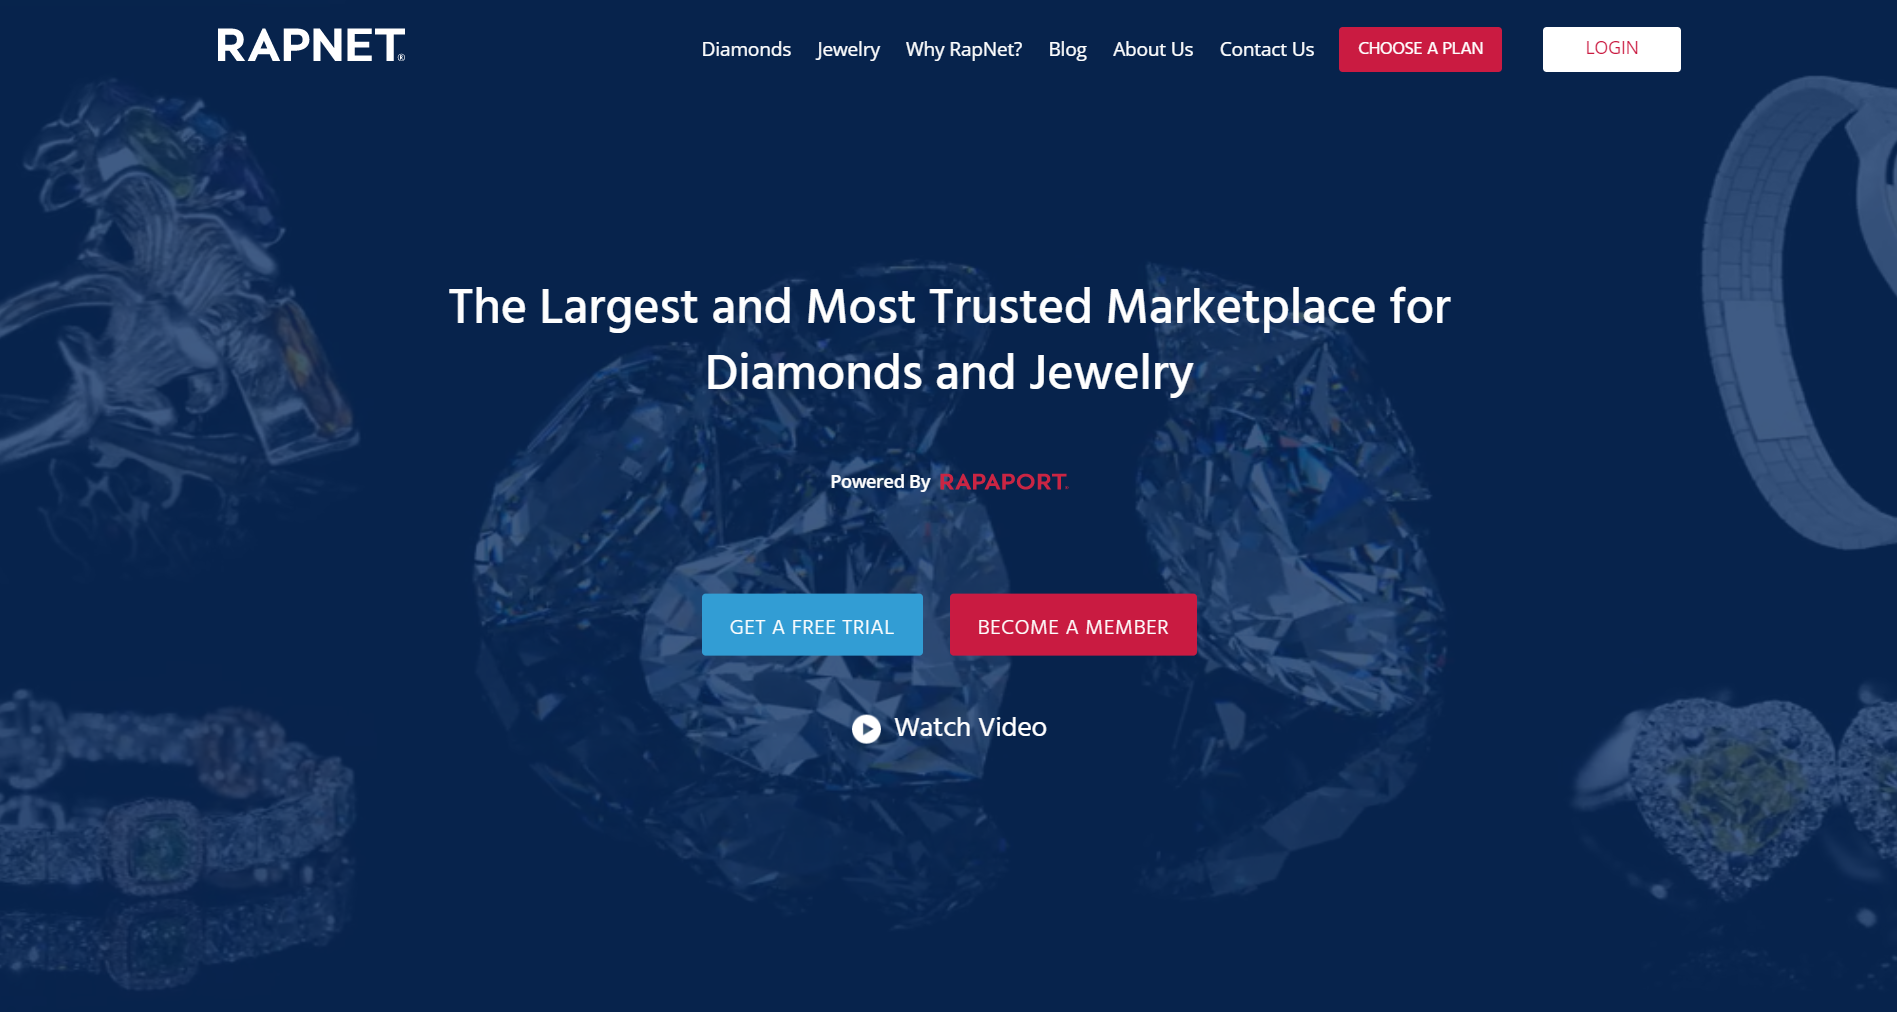 RapNet - The Largest and Most Trusted Marketplace for Diamonds and Jewelry